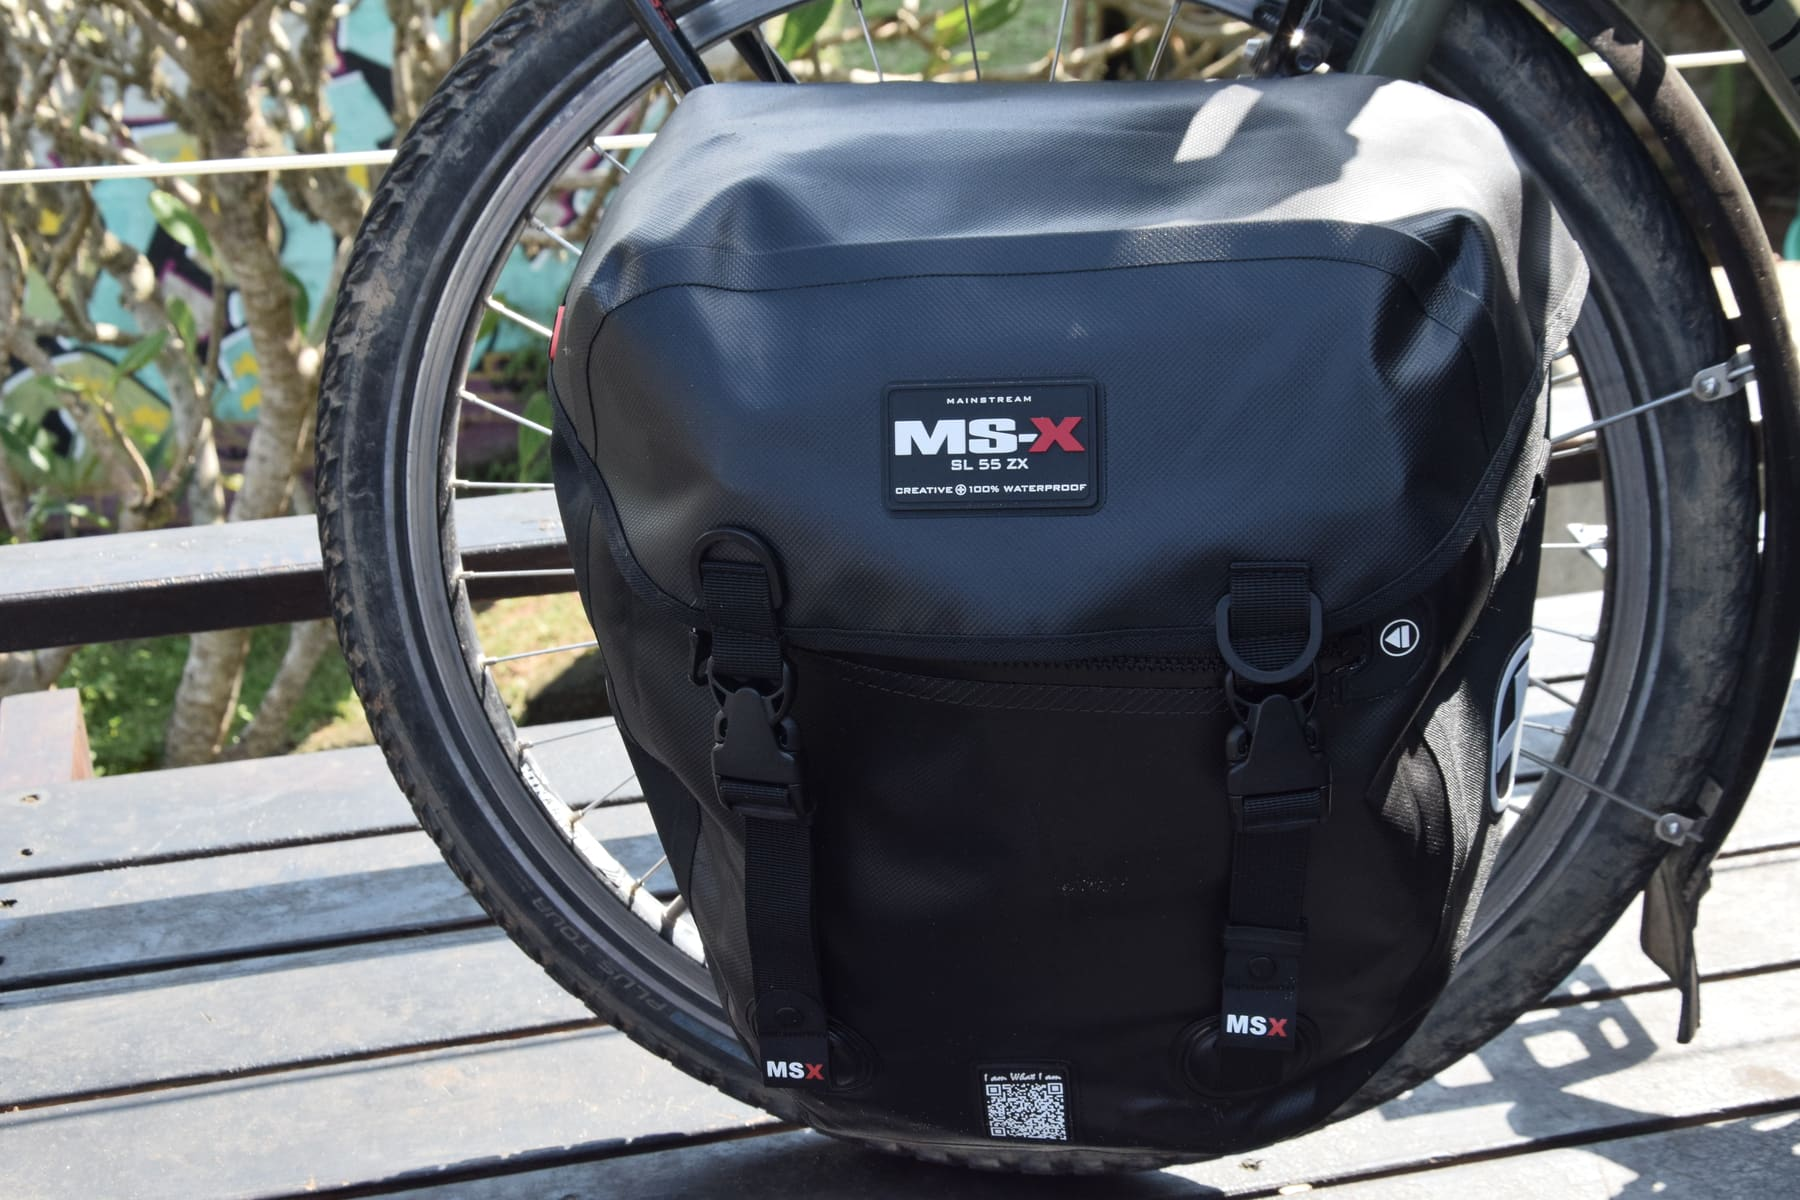 MSX SL 55 ZX luggage carrier bags